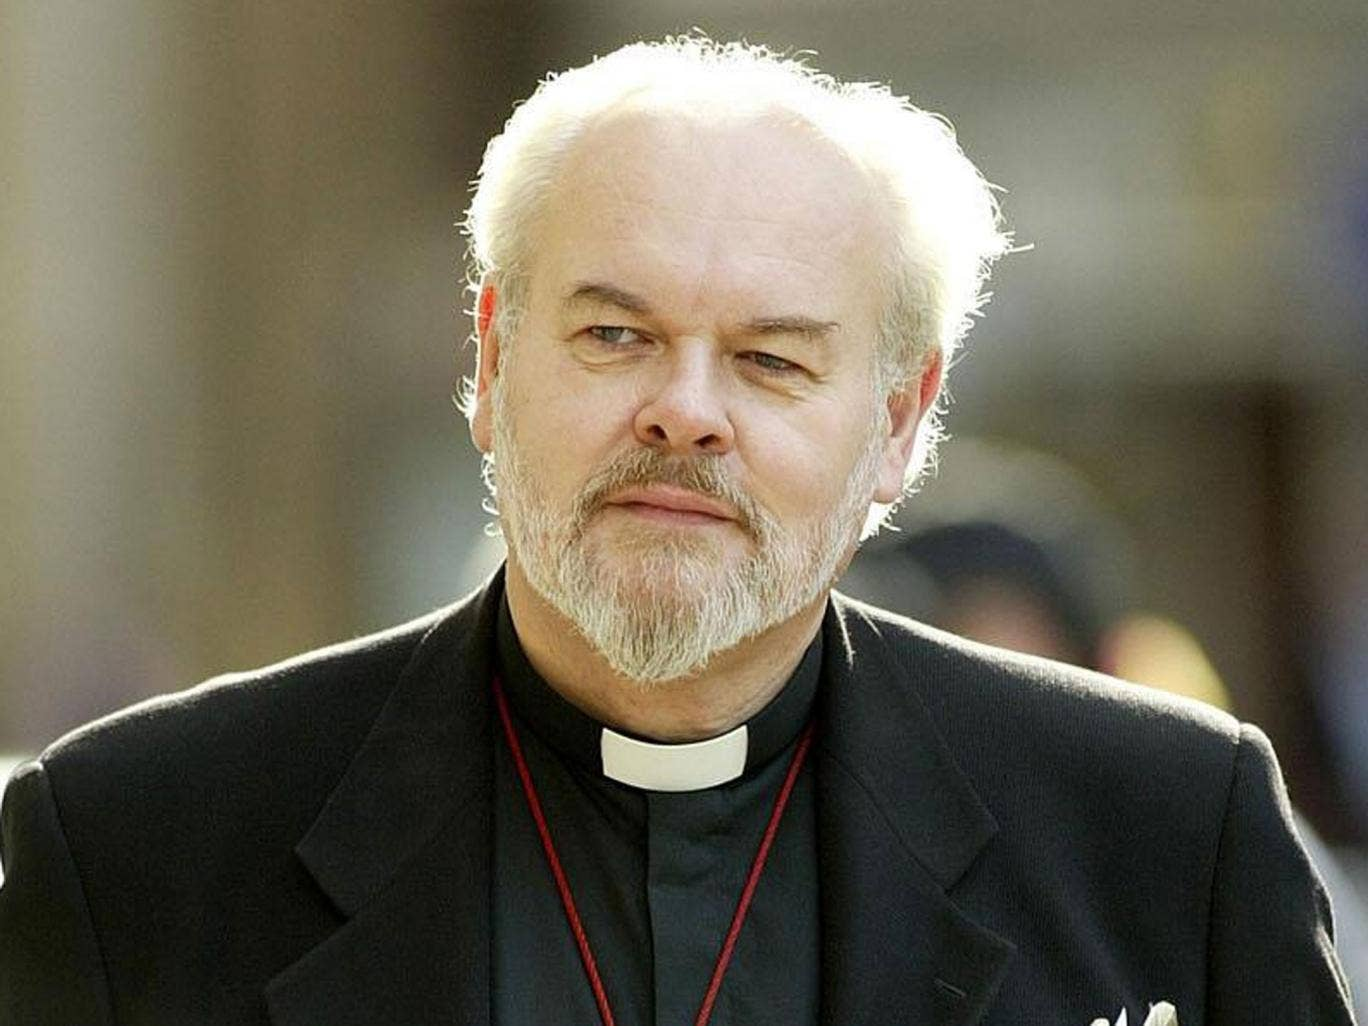 The Bishop of London, the Right Reverend Richard Chartres, is known for his outspoken views